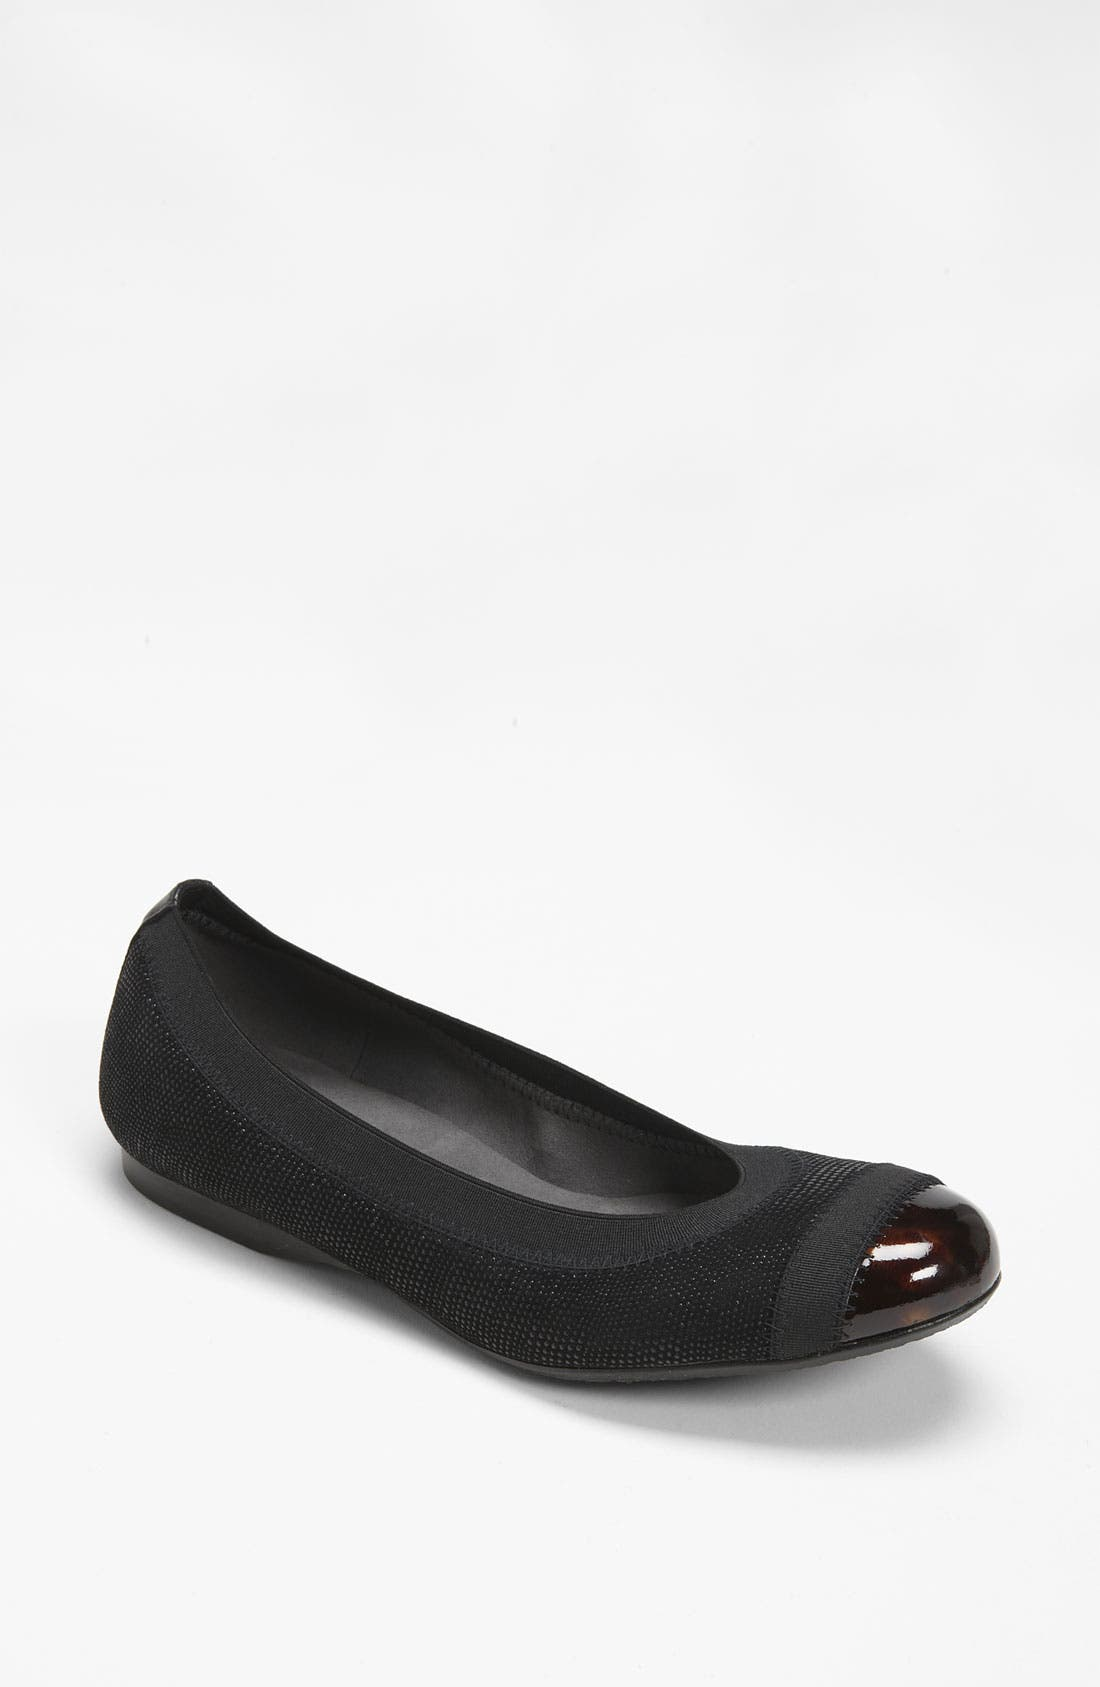 Alternate Image 1 Selected - Stuart Weitzman 'Tipable' Flat